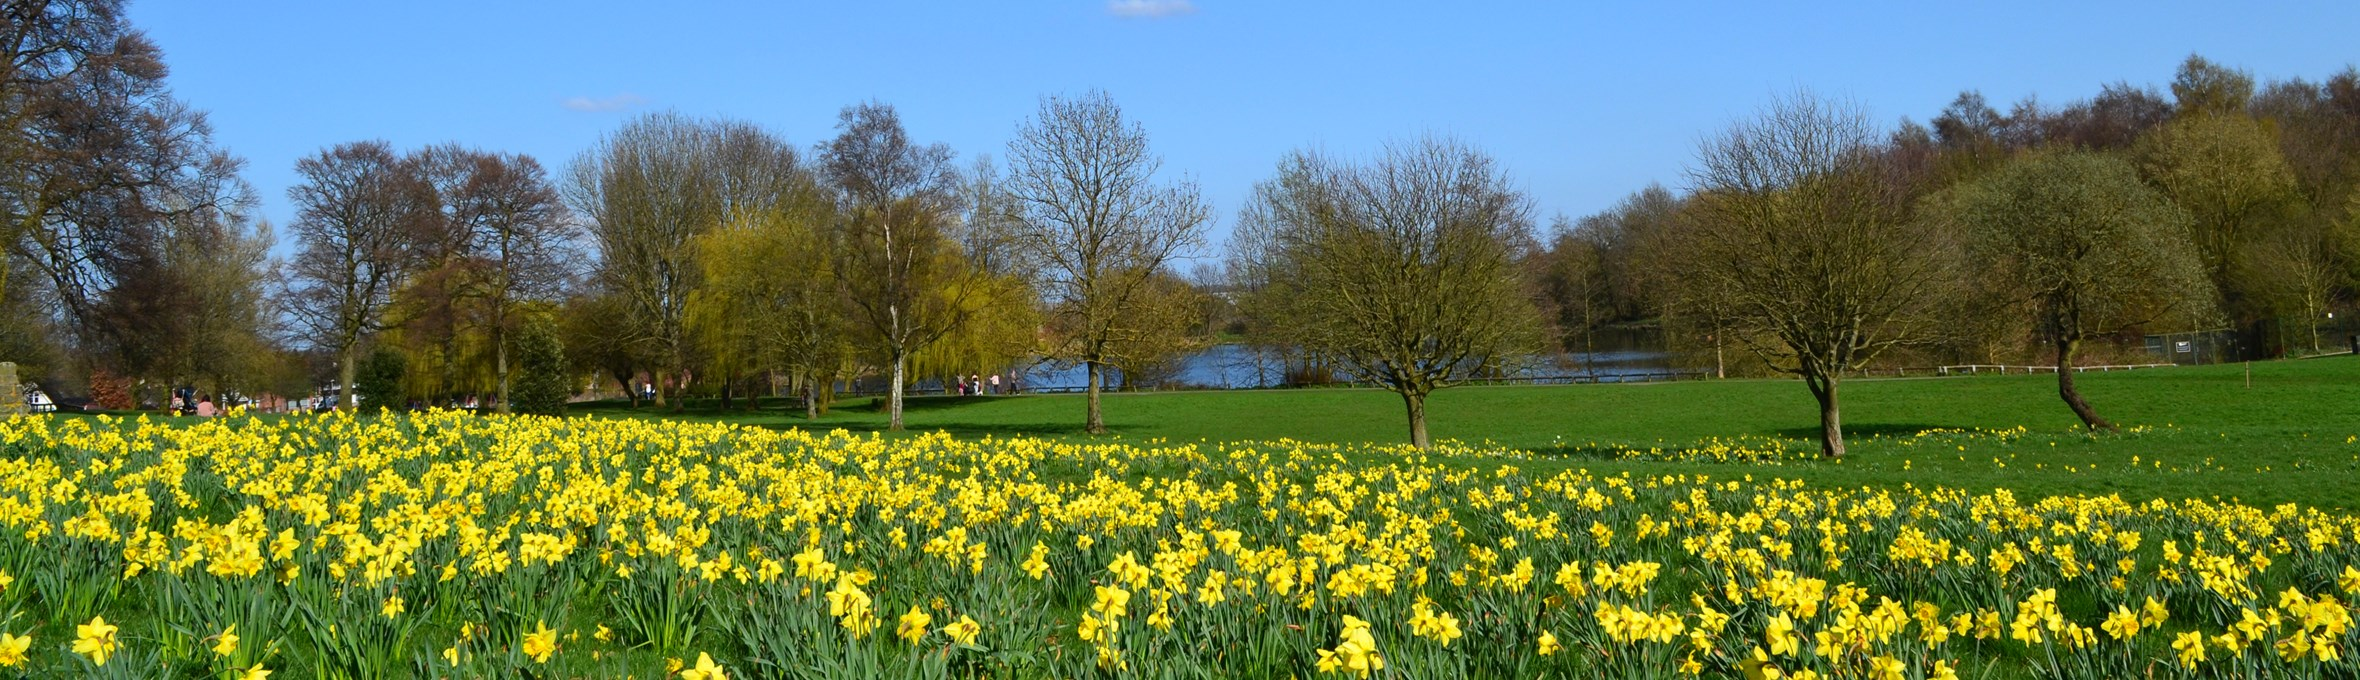 Daffodils, trees and blue sky with lake just showing in background